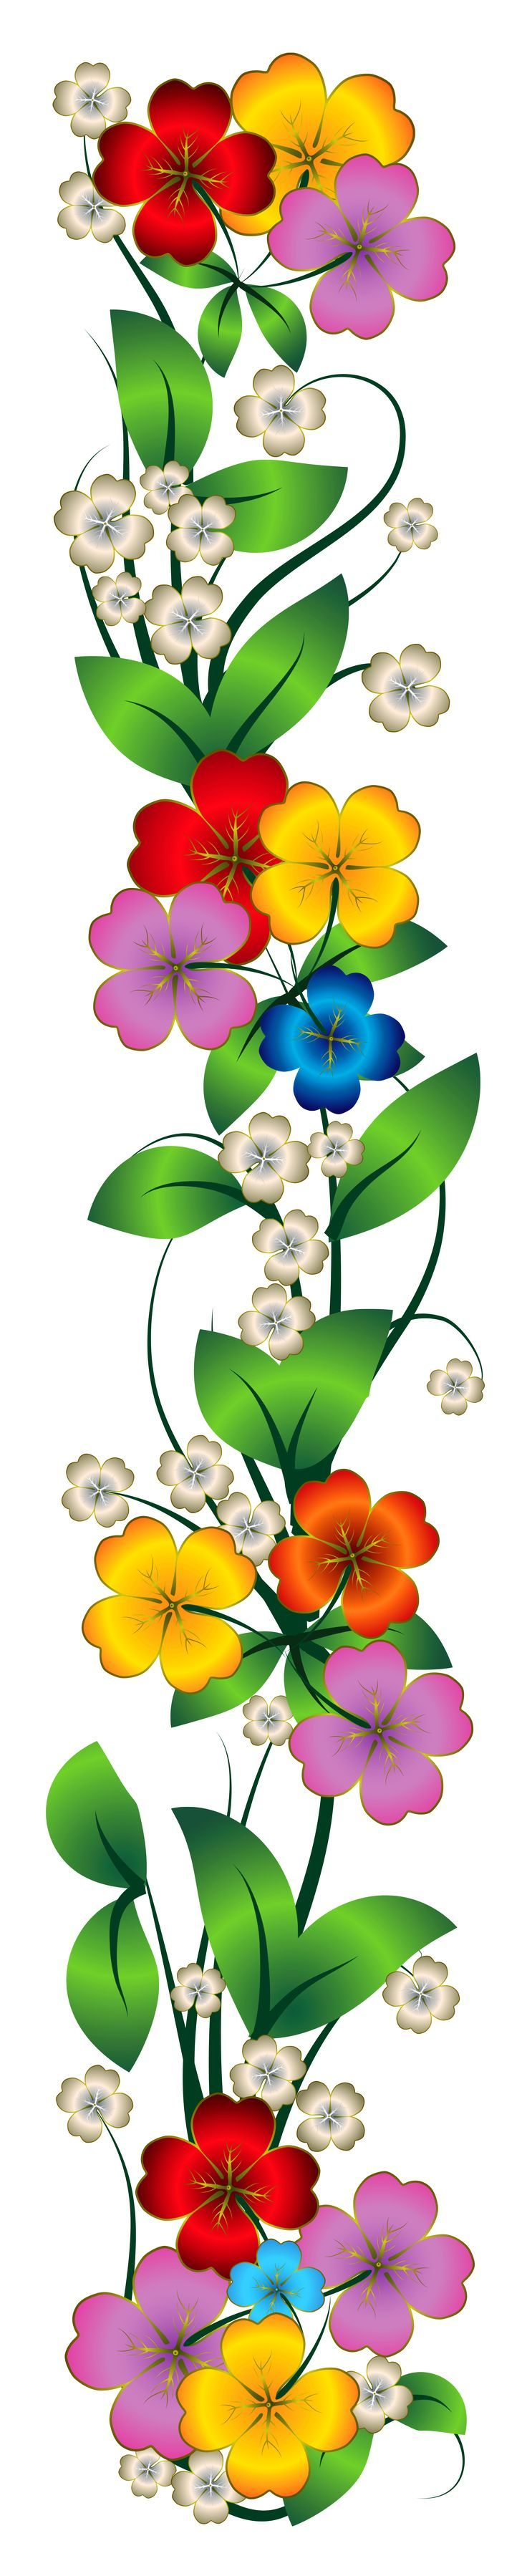 Gallery clipart beautiful flower pencil and in color gallery gallery clipart beautiful flower pencil and in color gallery clipart beautiful flower izmirmasajfo